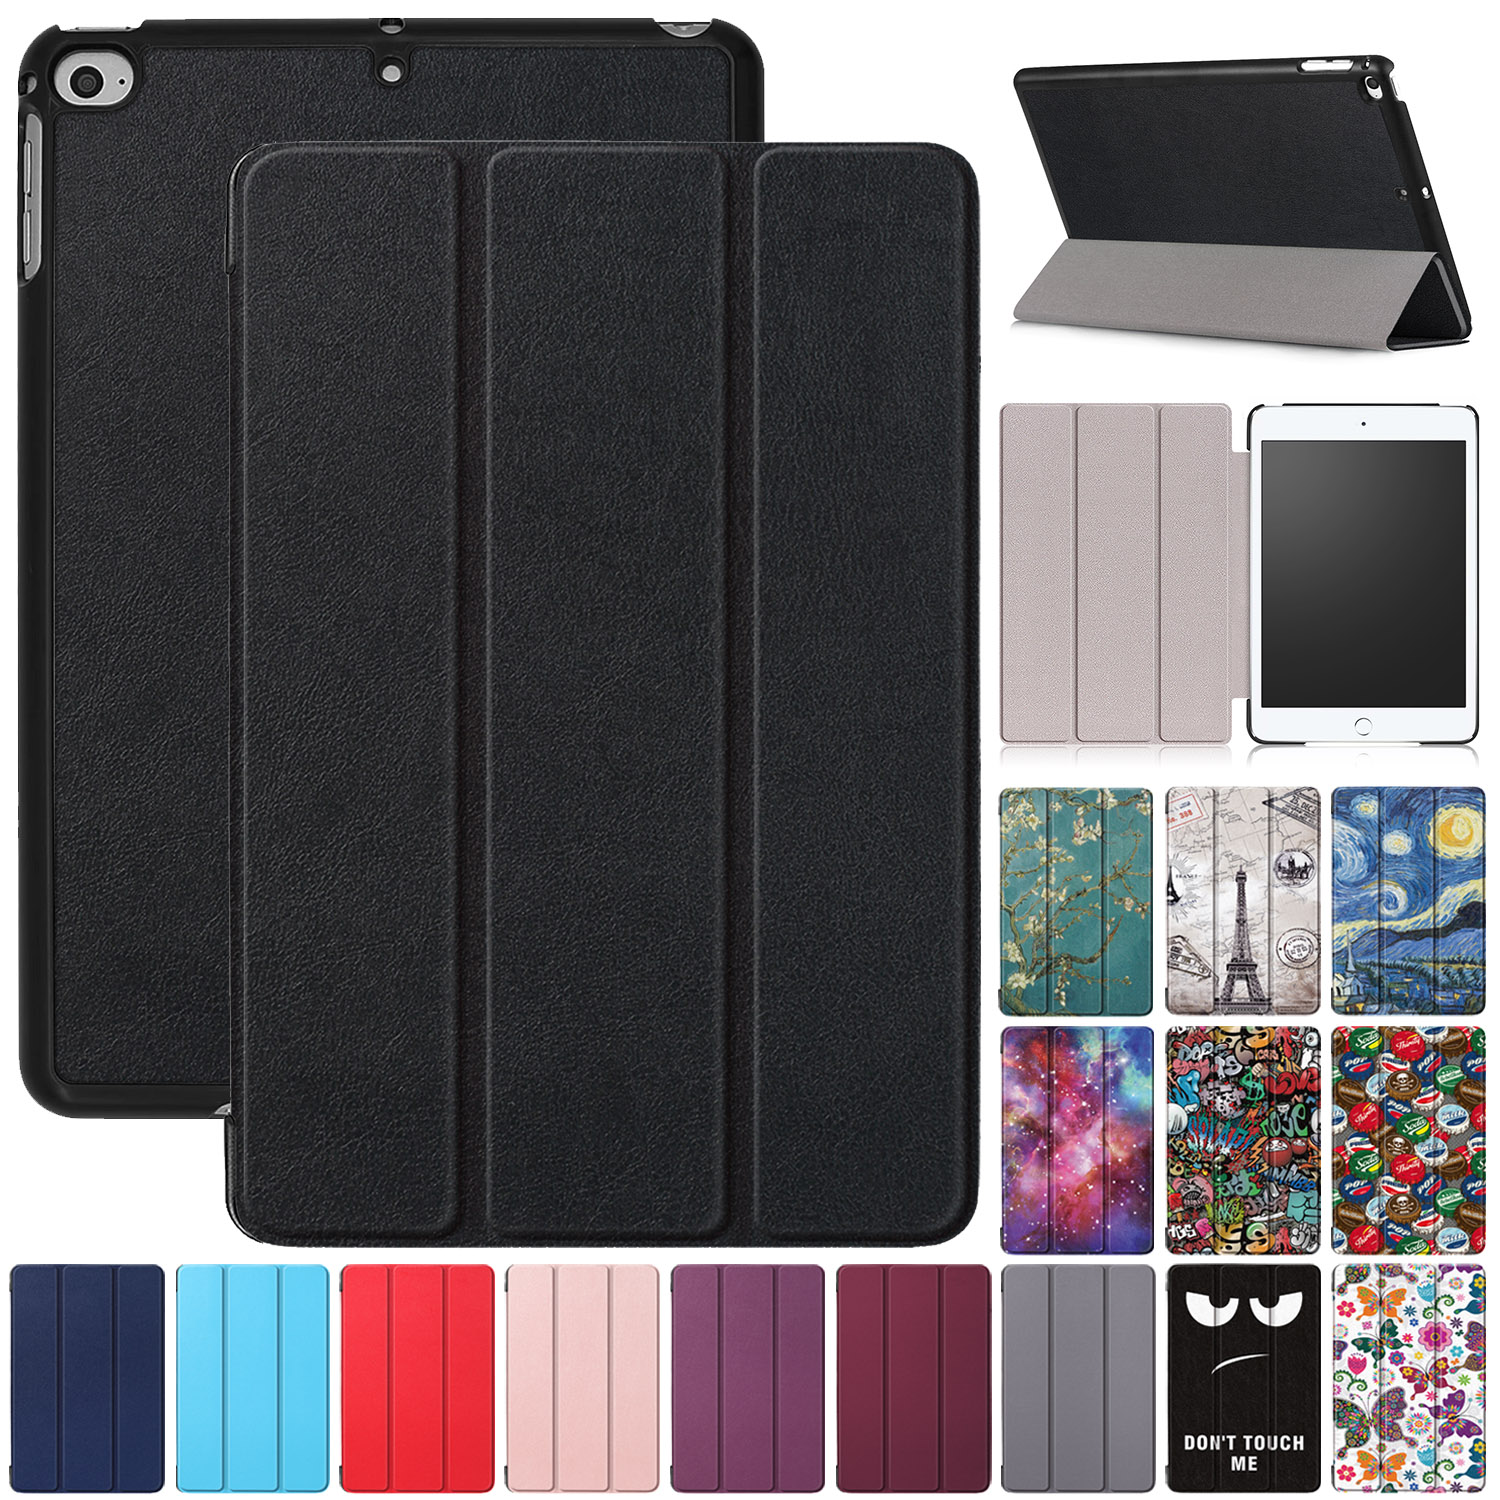 Strong Magnetic Smart Case For Apple iPad Models Ultra-Slim Folding Stand Cover